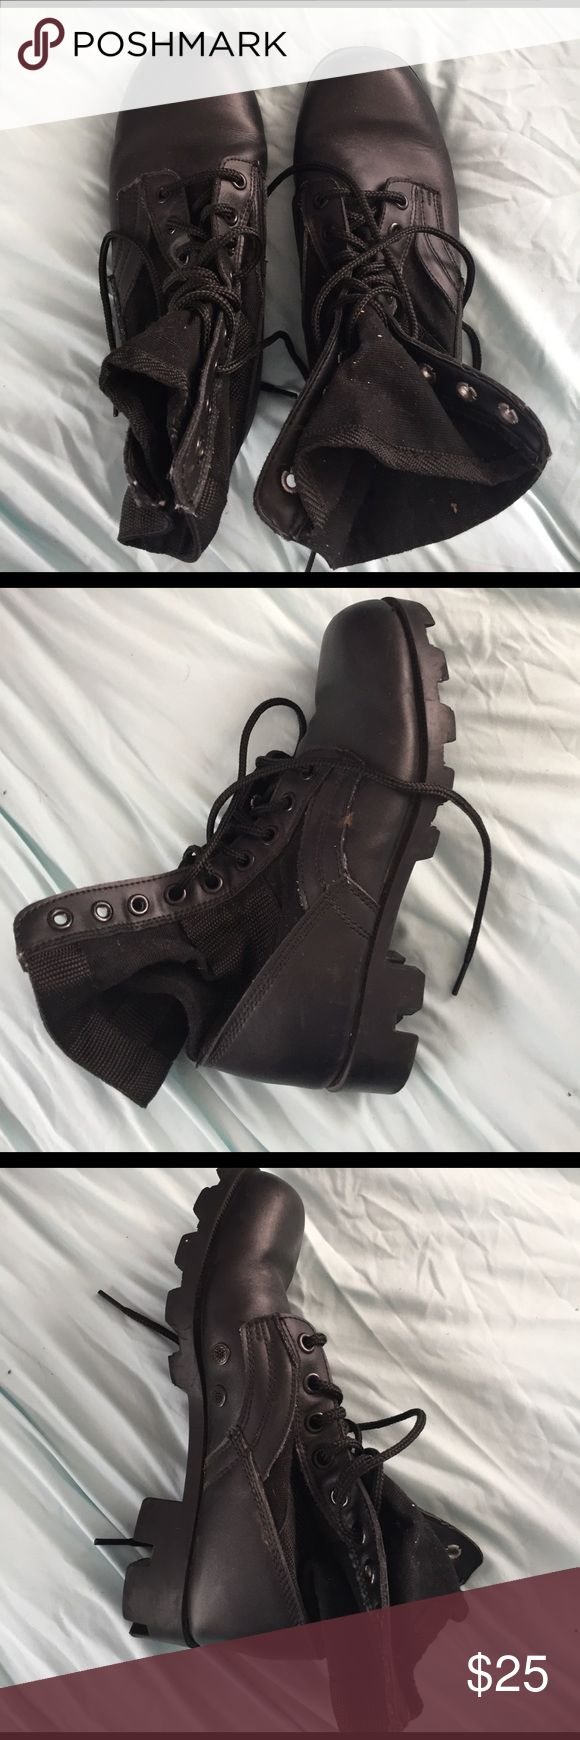 Black combat boots Cool looking army combat boots, looks great with anything and adds a hint of rebel to any outfit. Super comfortable and great for any situation. Wore once or twice Blundstone Shoes Combat & Moto Boots